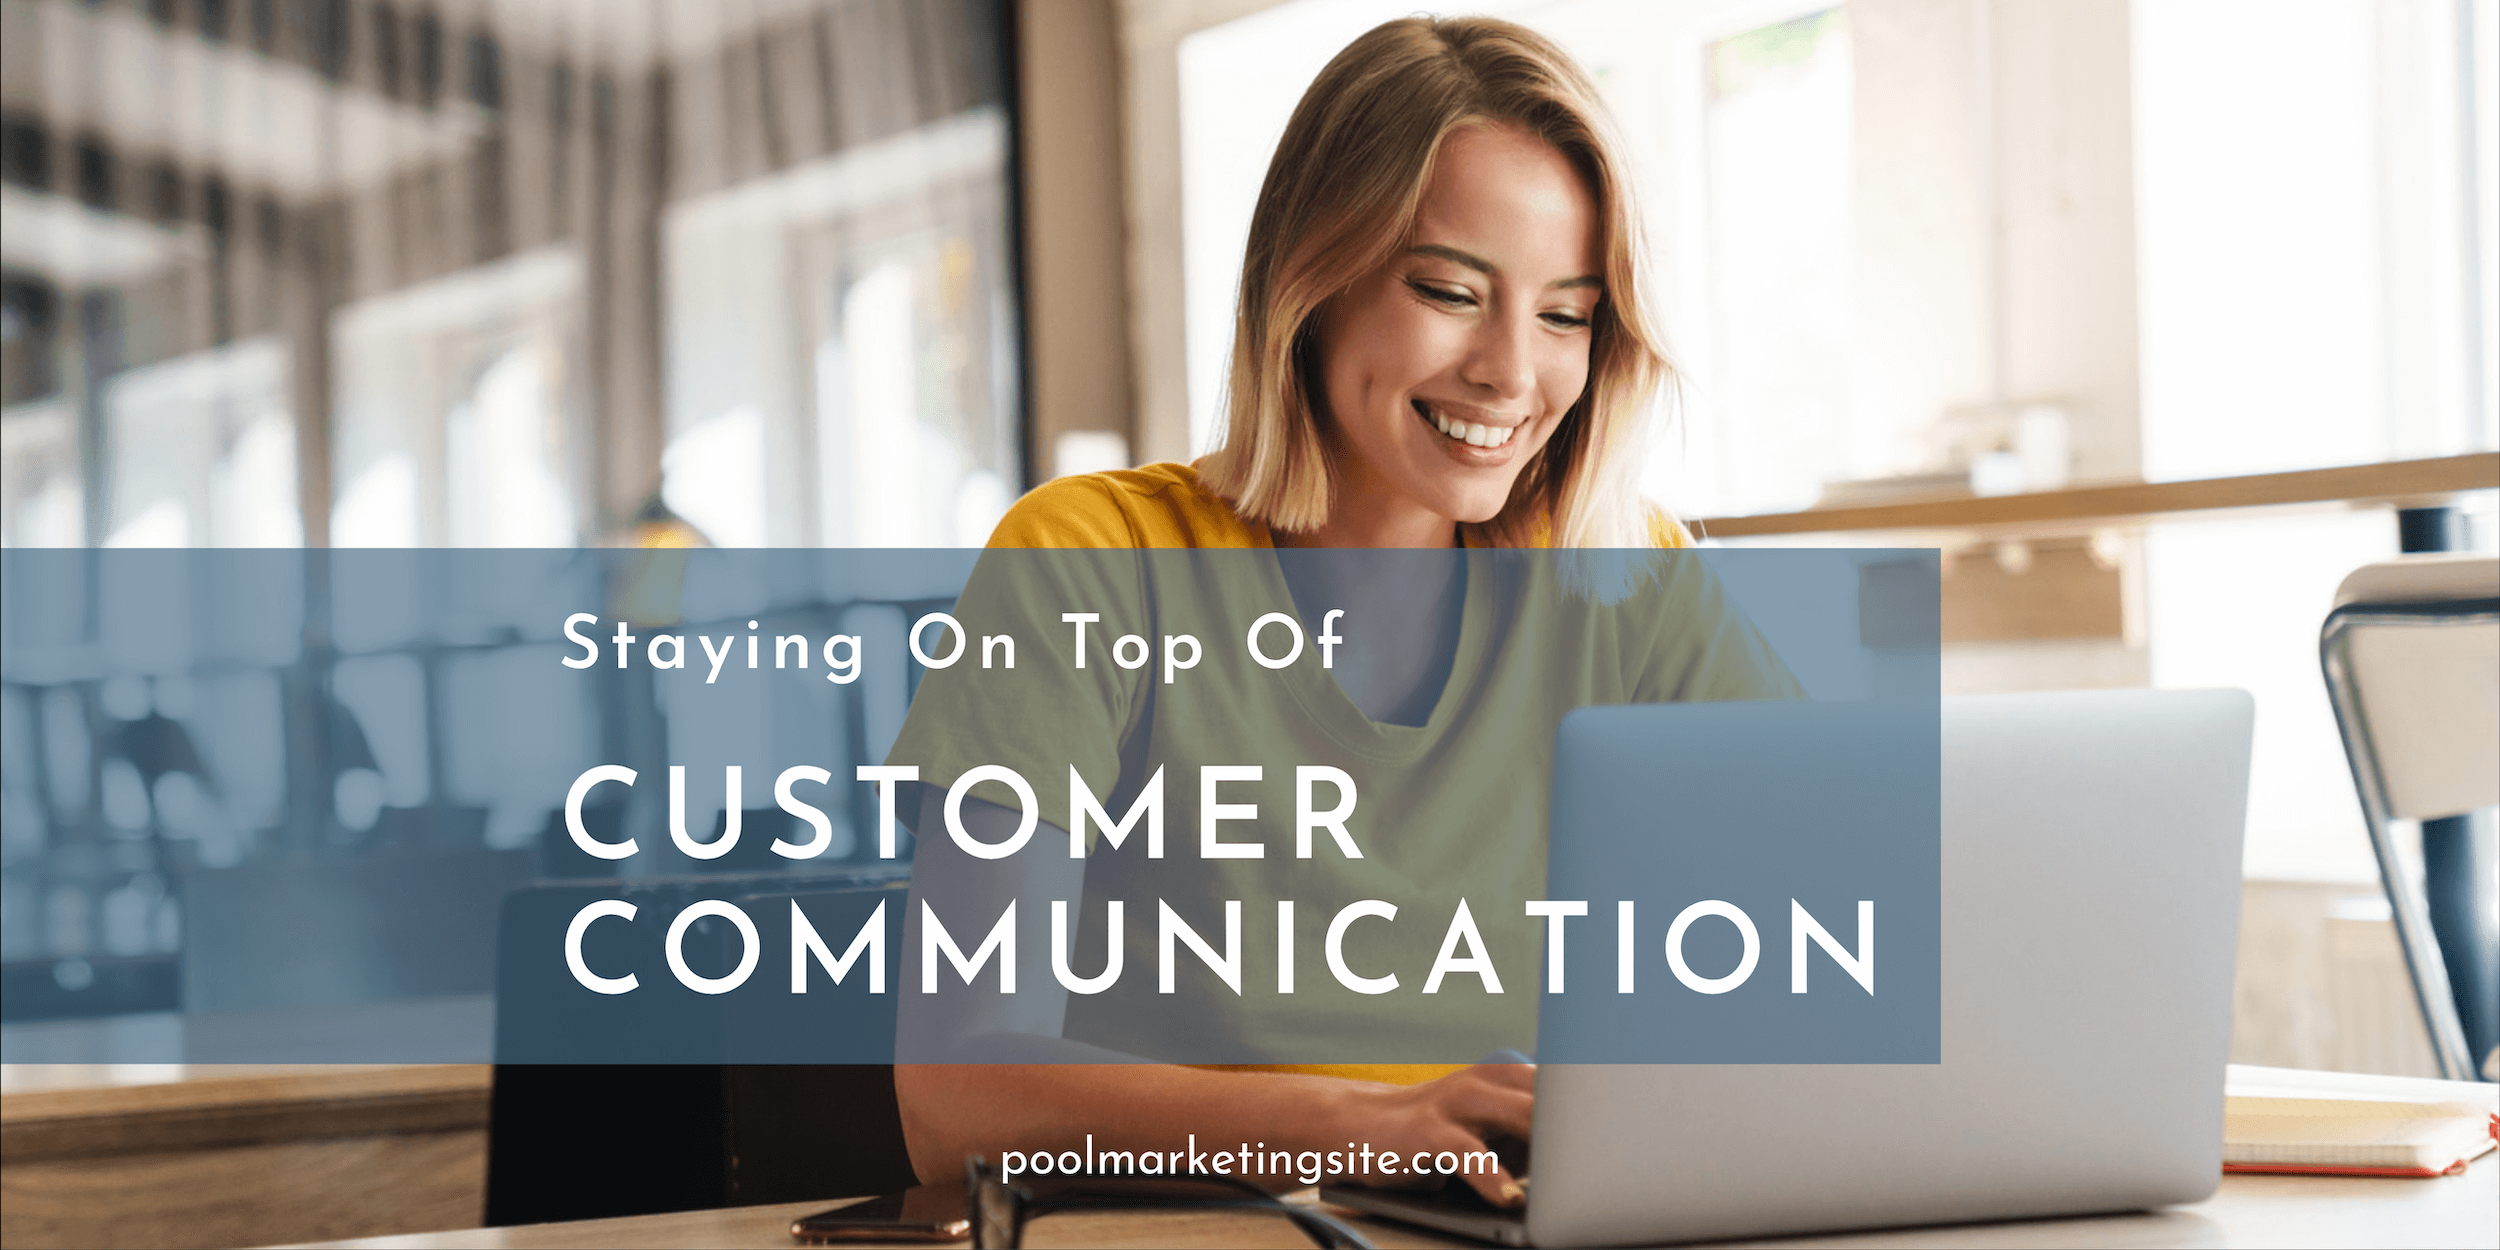 Staying On Top of Customer Communication